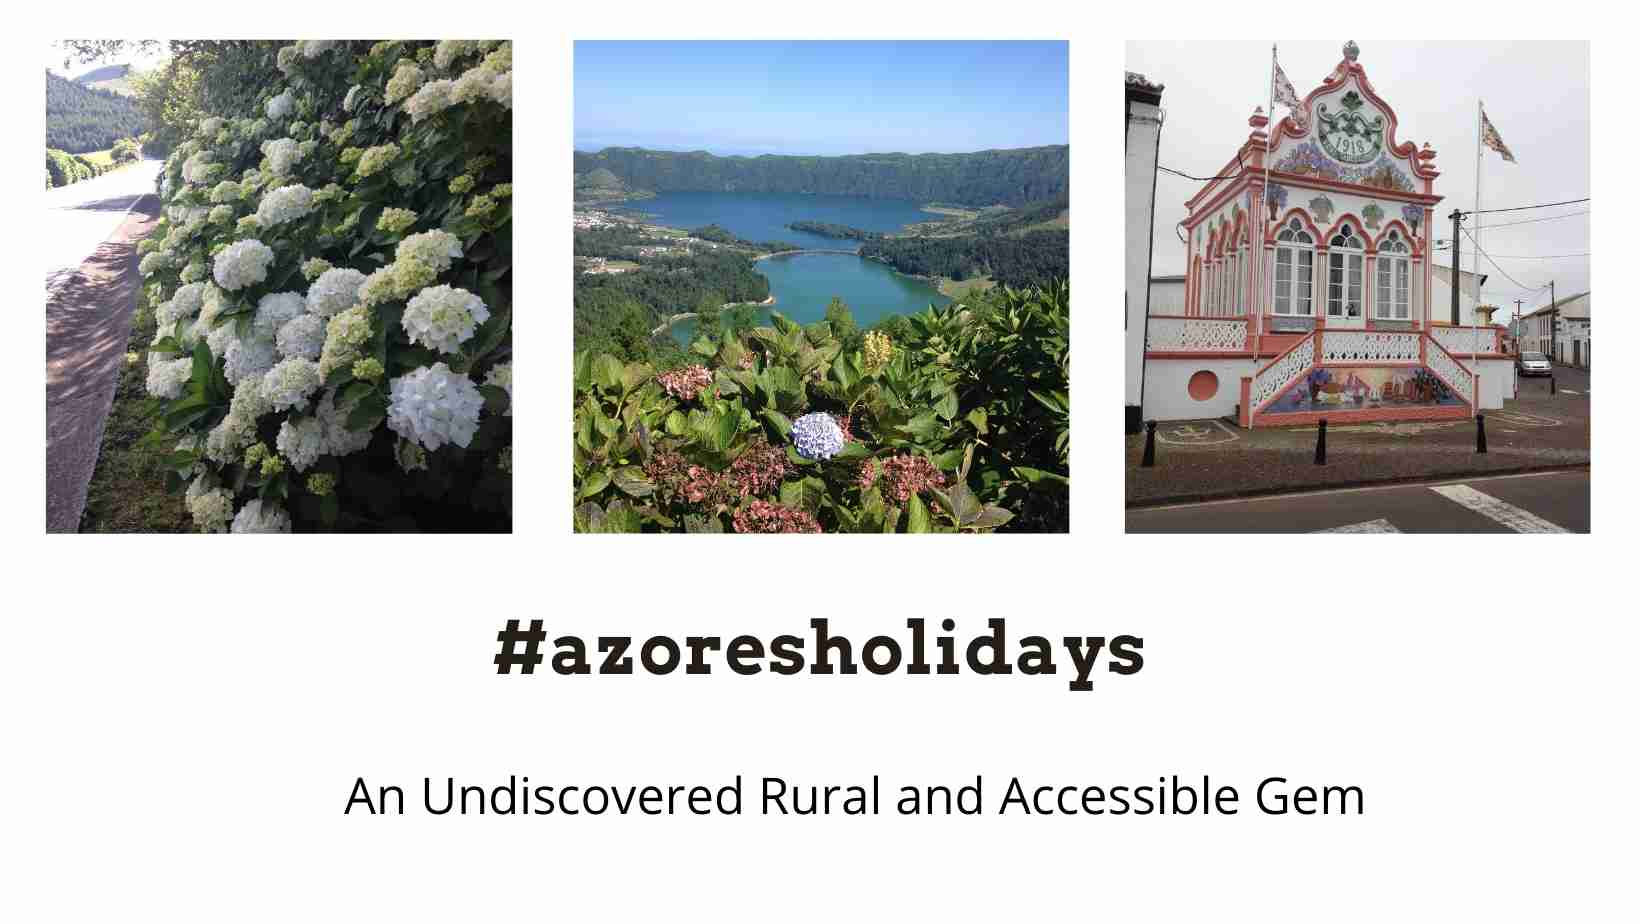 azores holidays #azoresholidays the professional traveller #theprofessionaltraveller